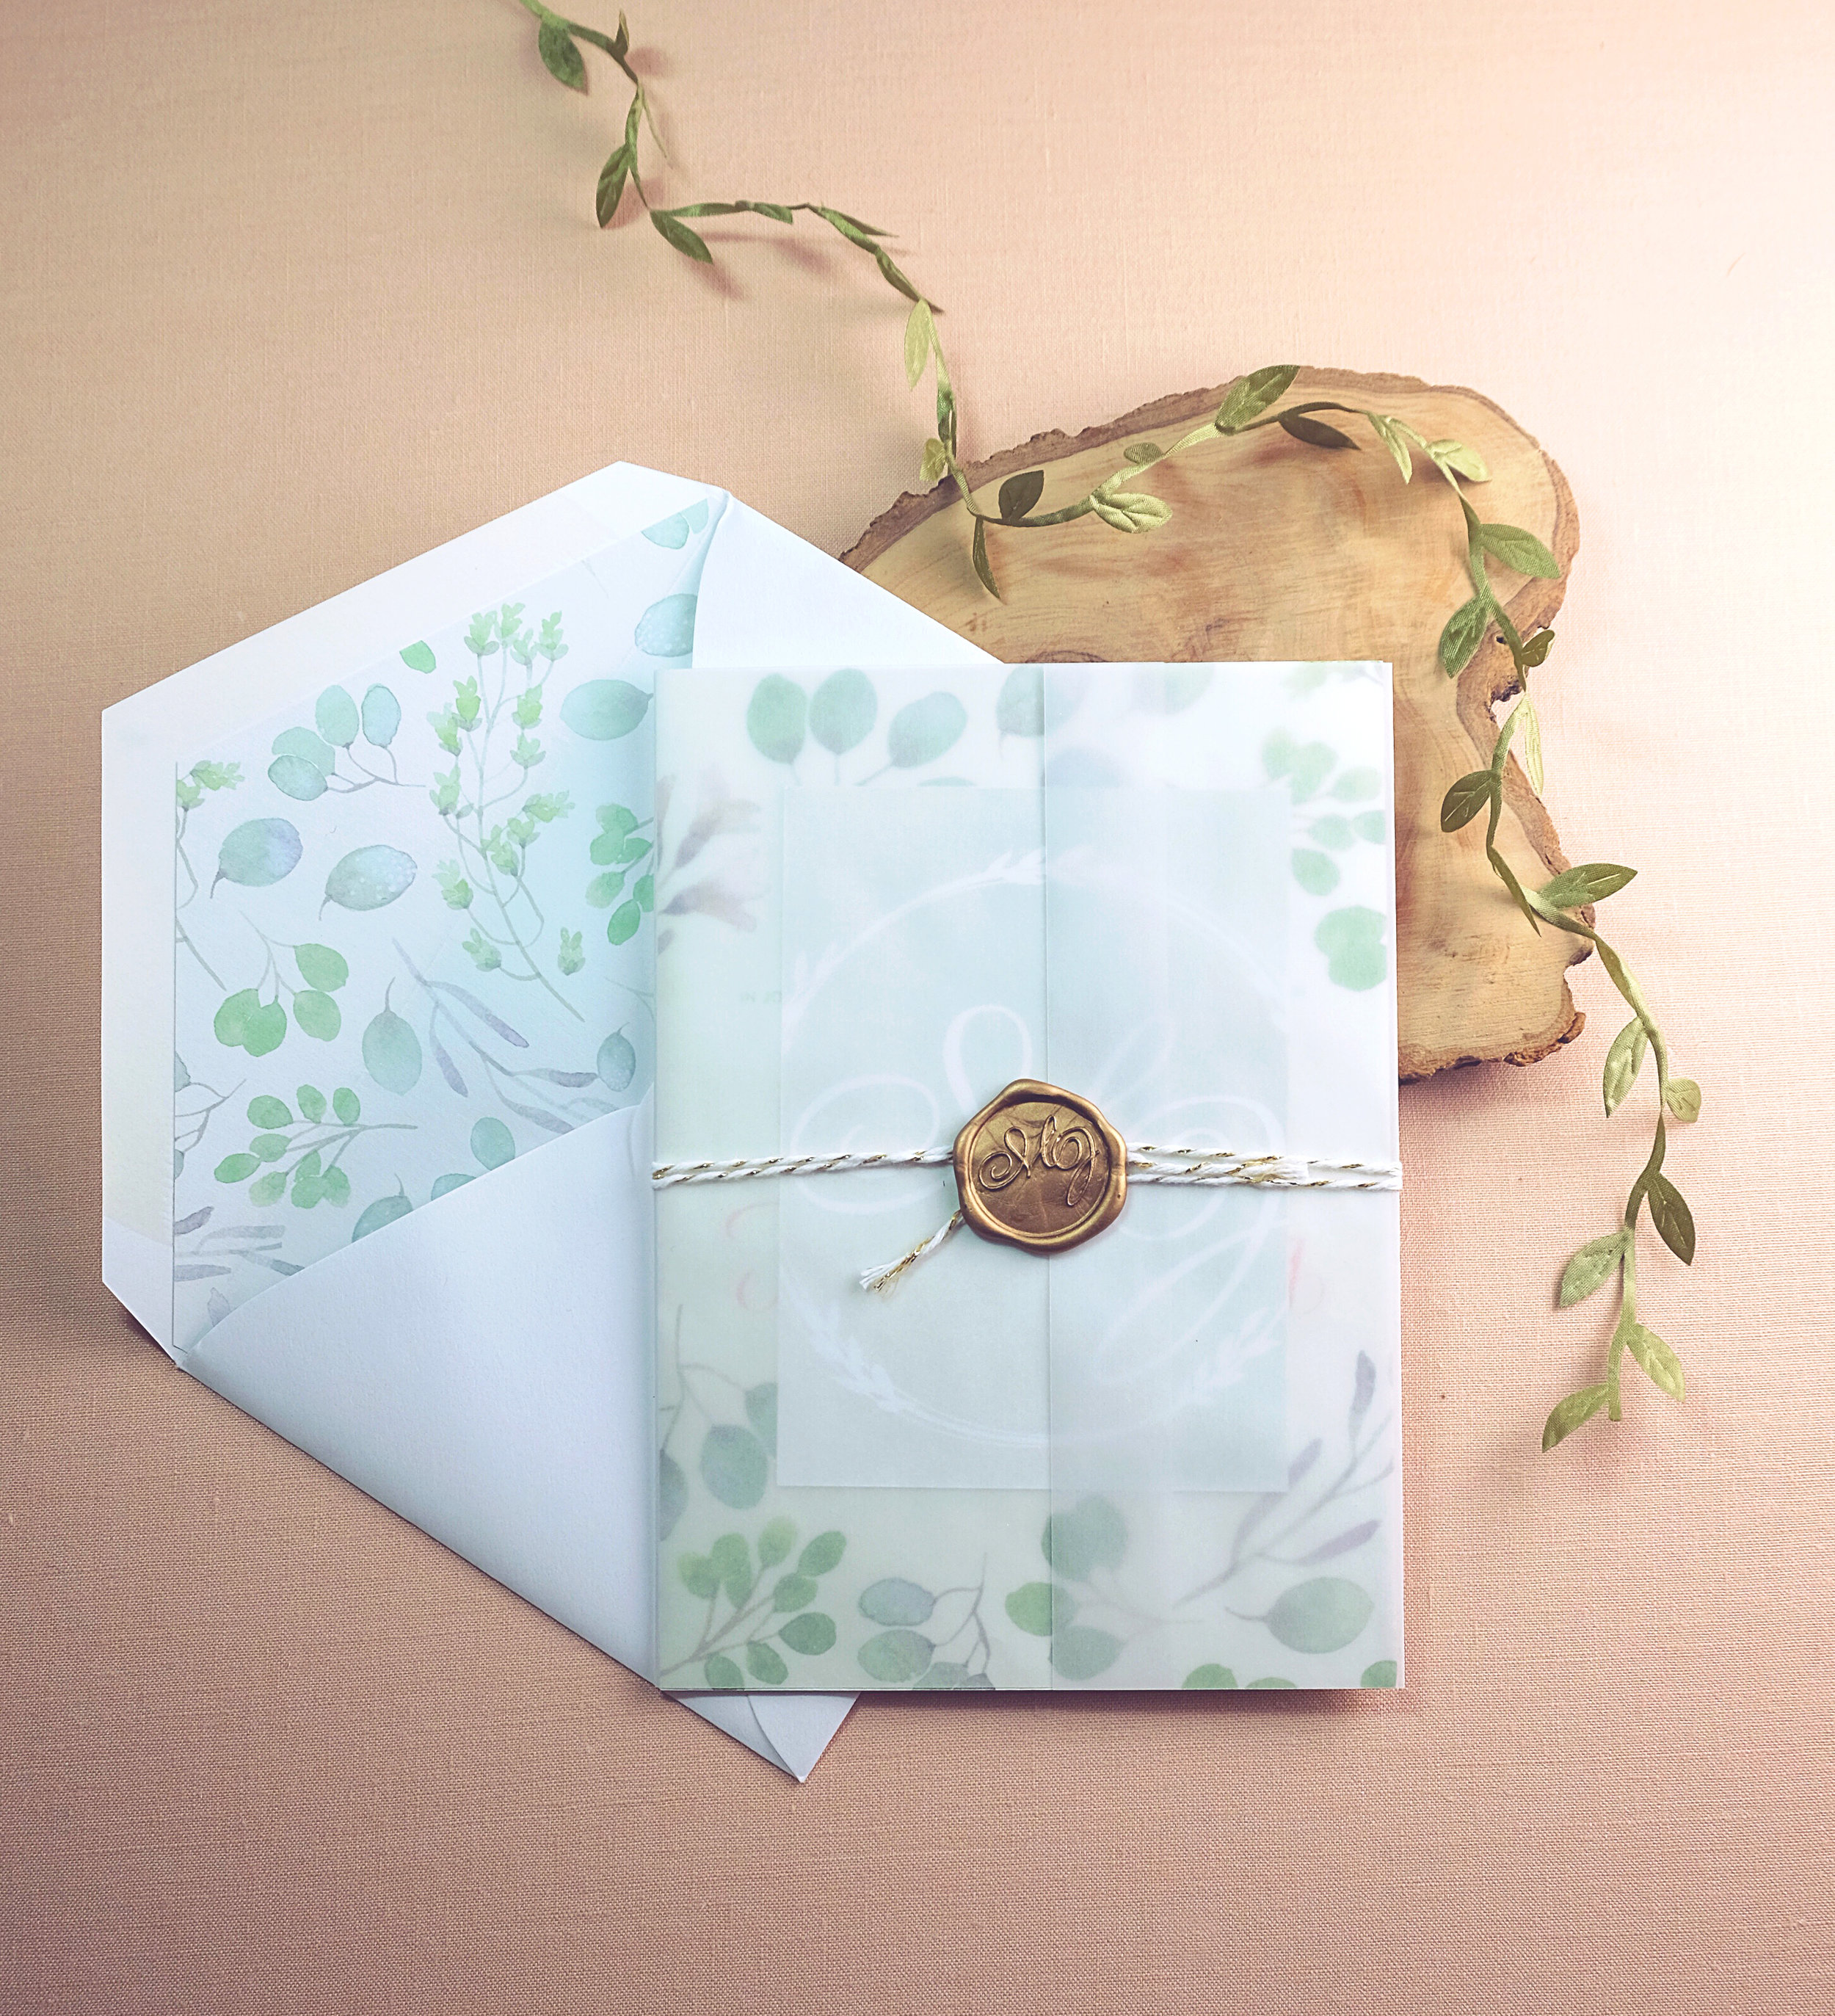 Wedding invitation with a wax seal, watercolor florals and letterpress printed calligraphy | www.chavelli.com